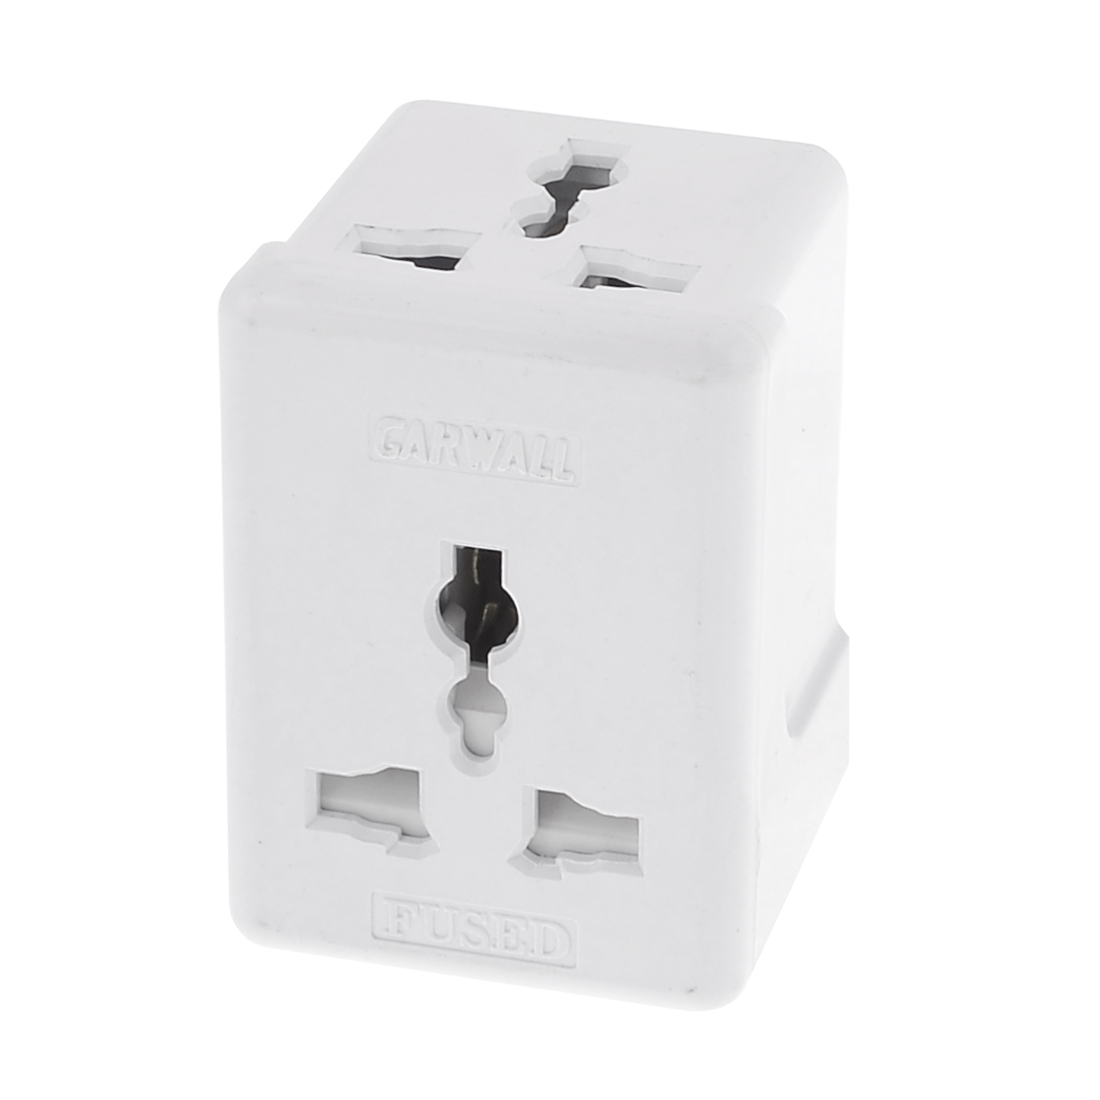 UK Plug to UK US Socket AC 250V 10A 3 Outlet Power Adapter